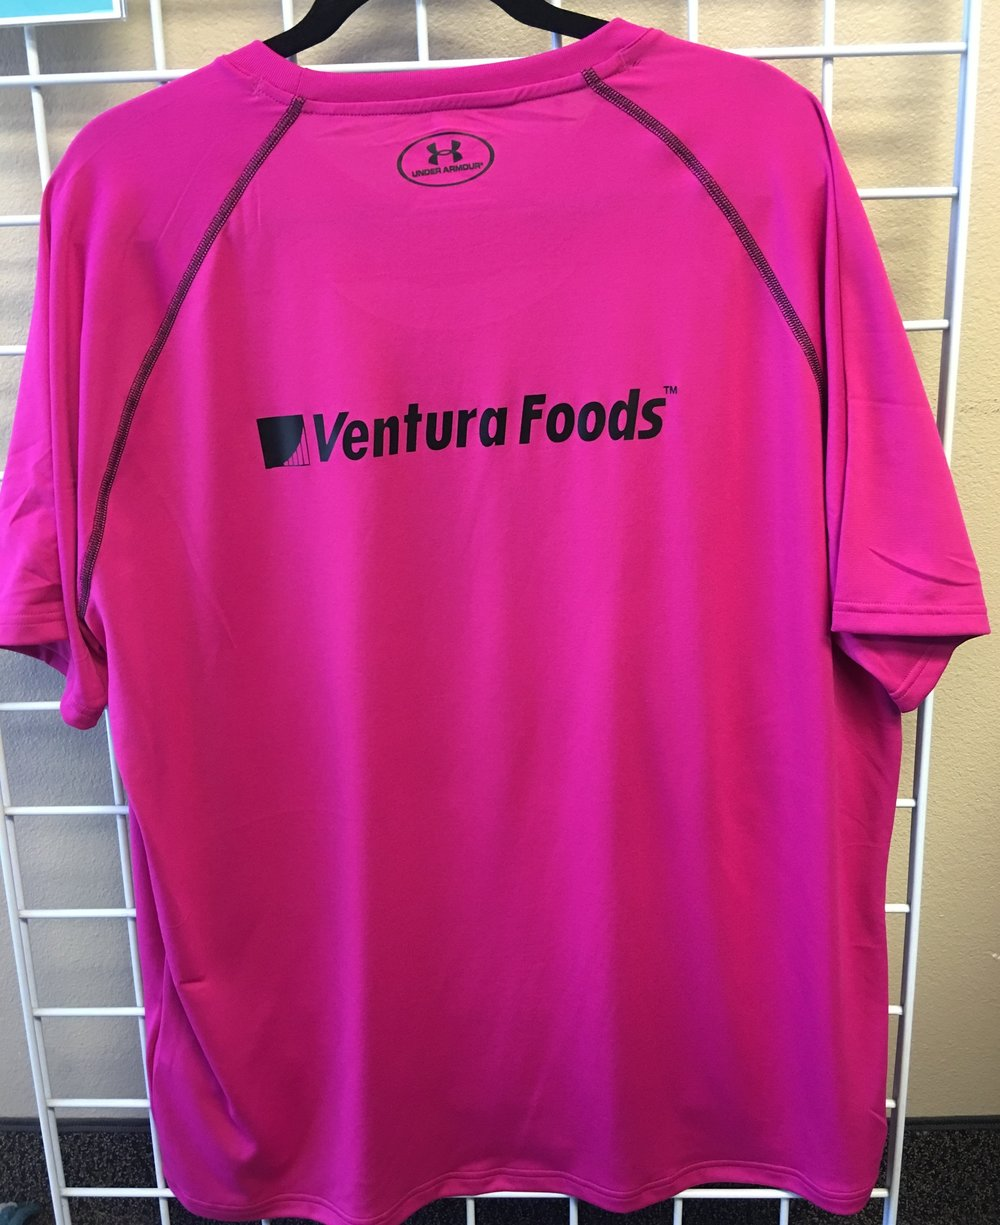 Custom Drifit Tees Sponsored by Ventura Foods - Saucy Pink Ninjas